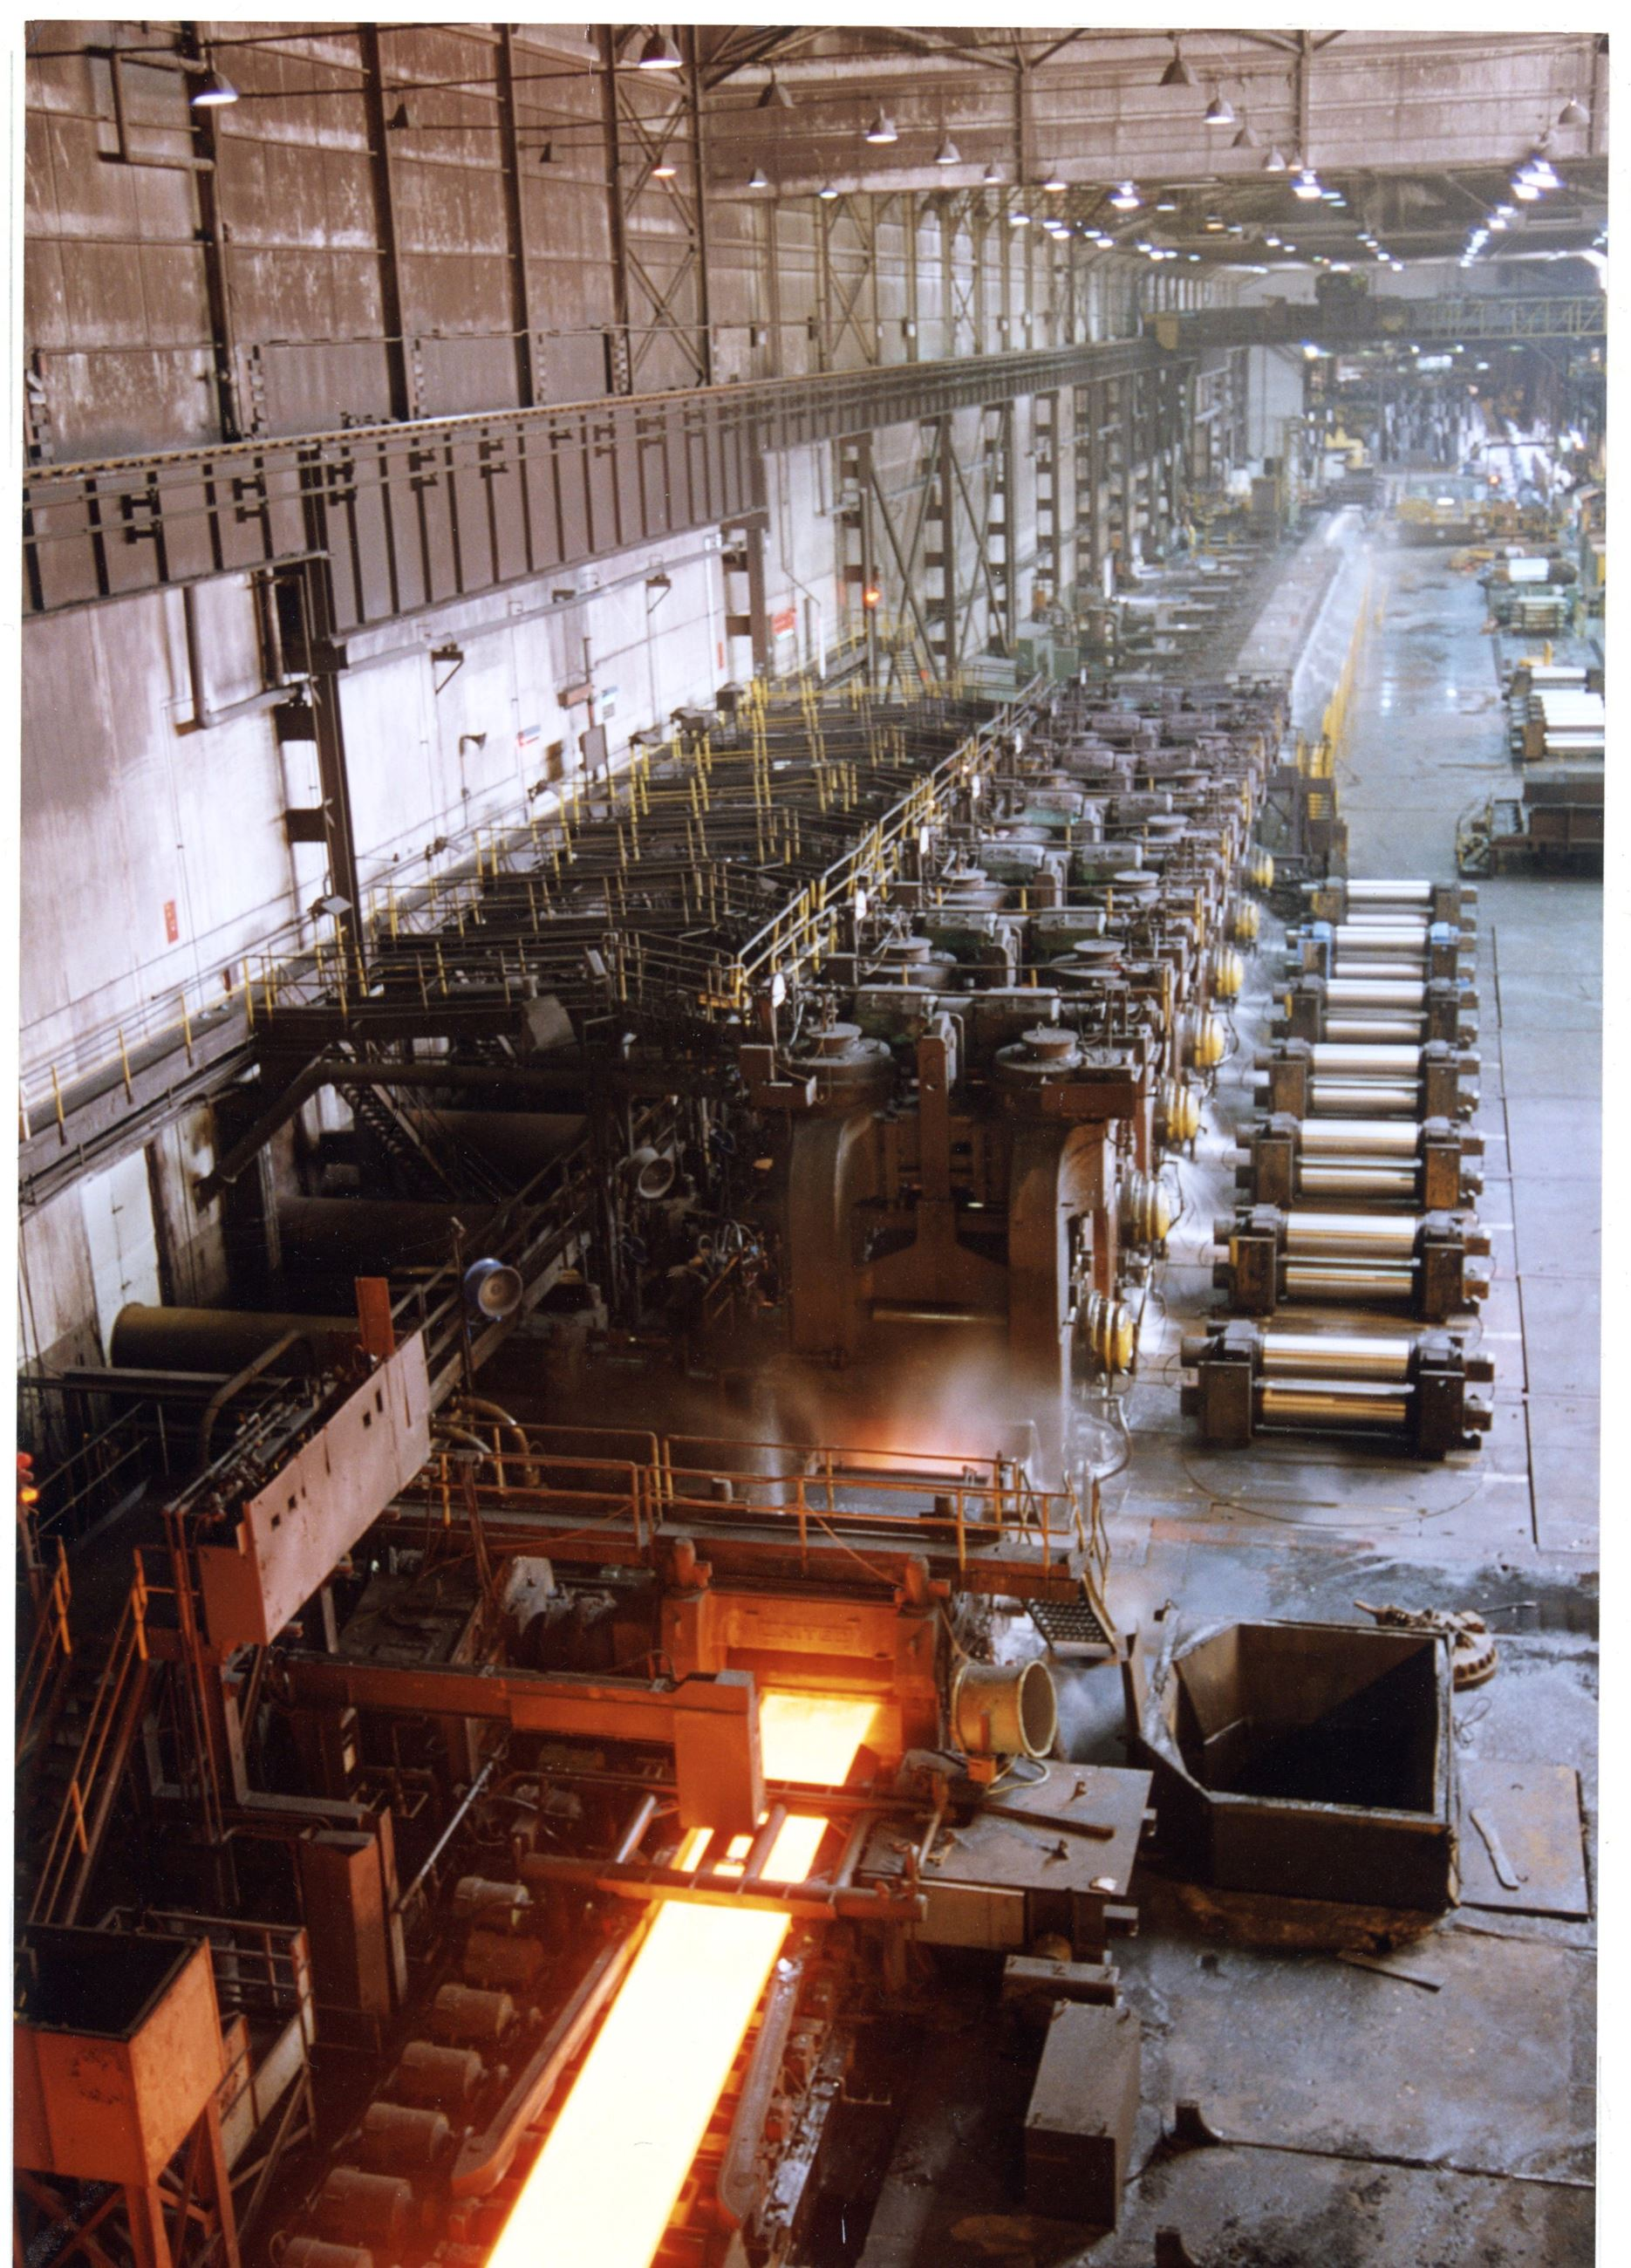 80-inch hot-steel mill